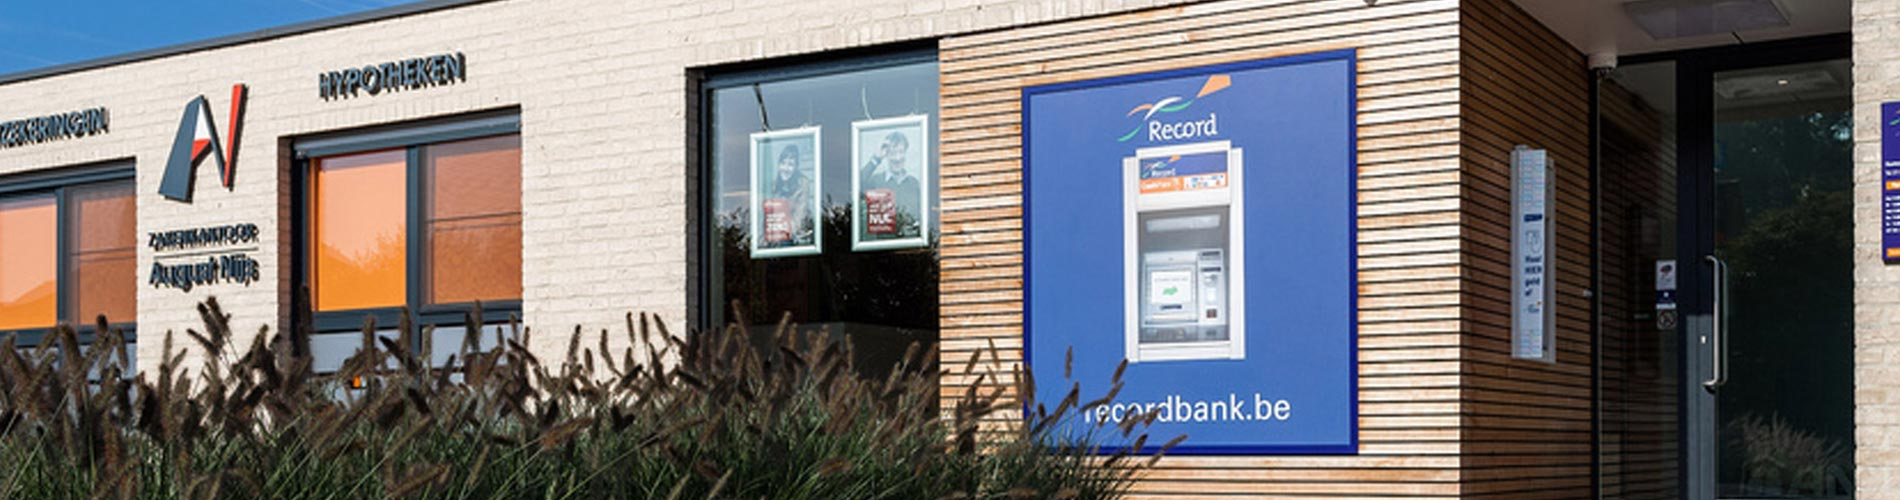 Parking-bankautomaat-openingsuren-slider